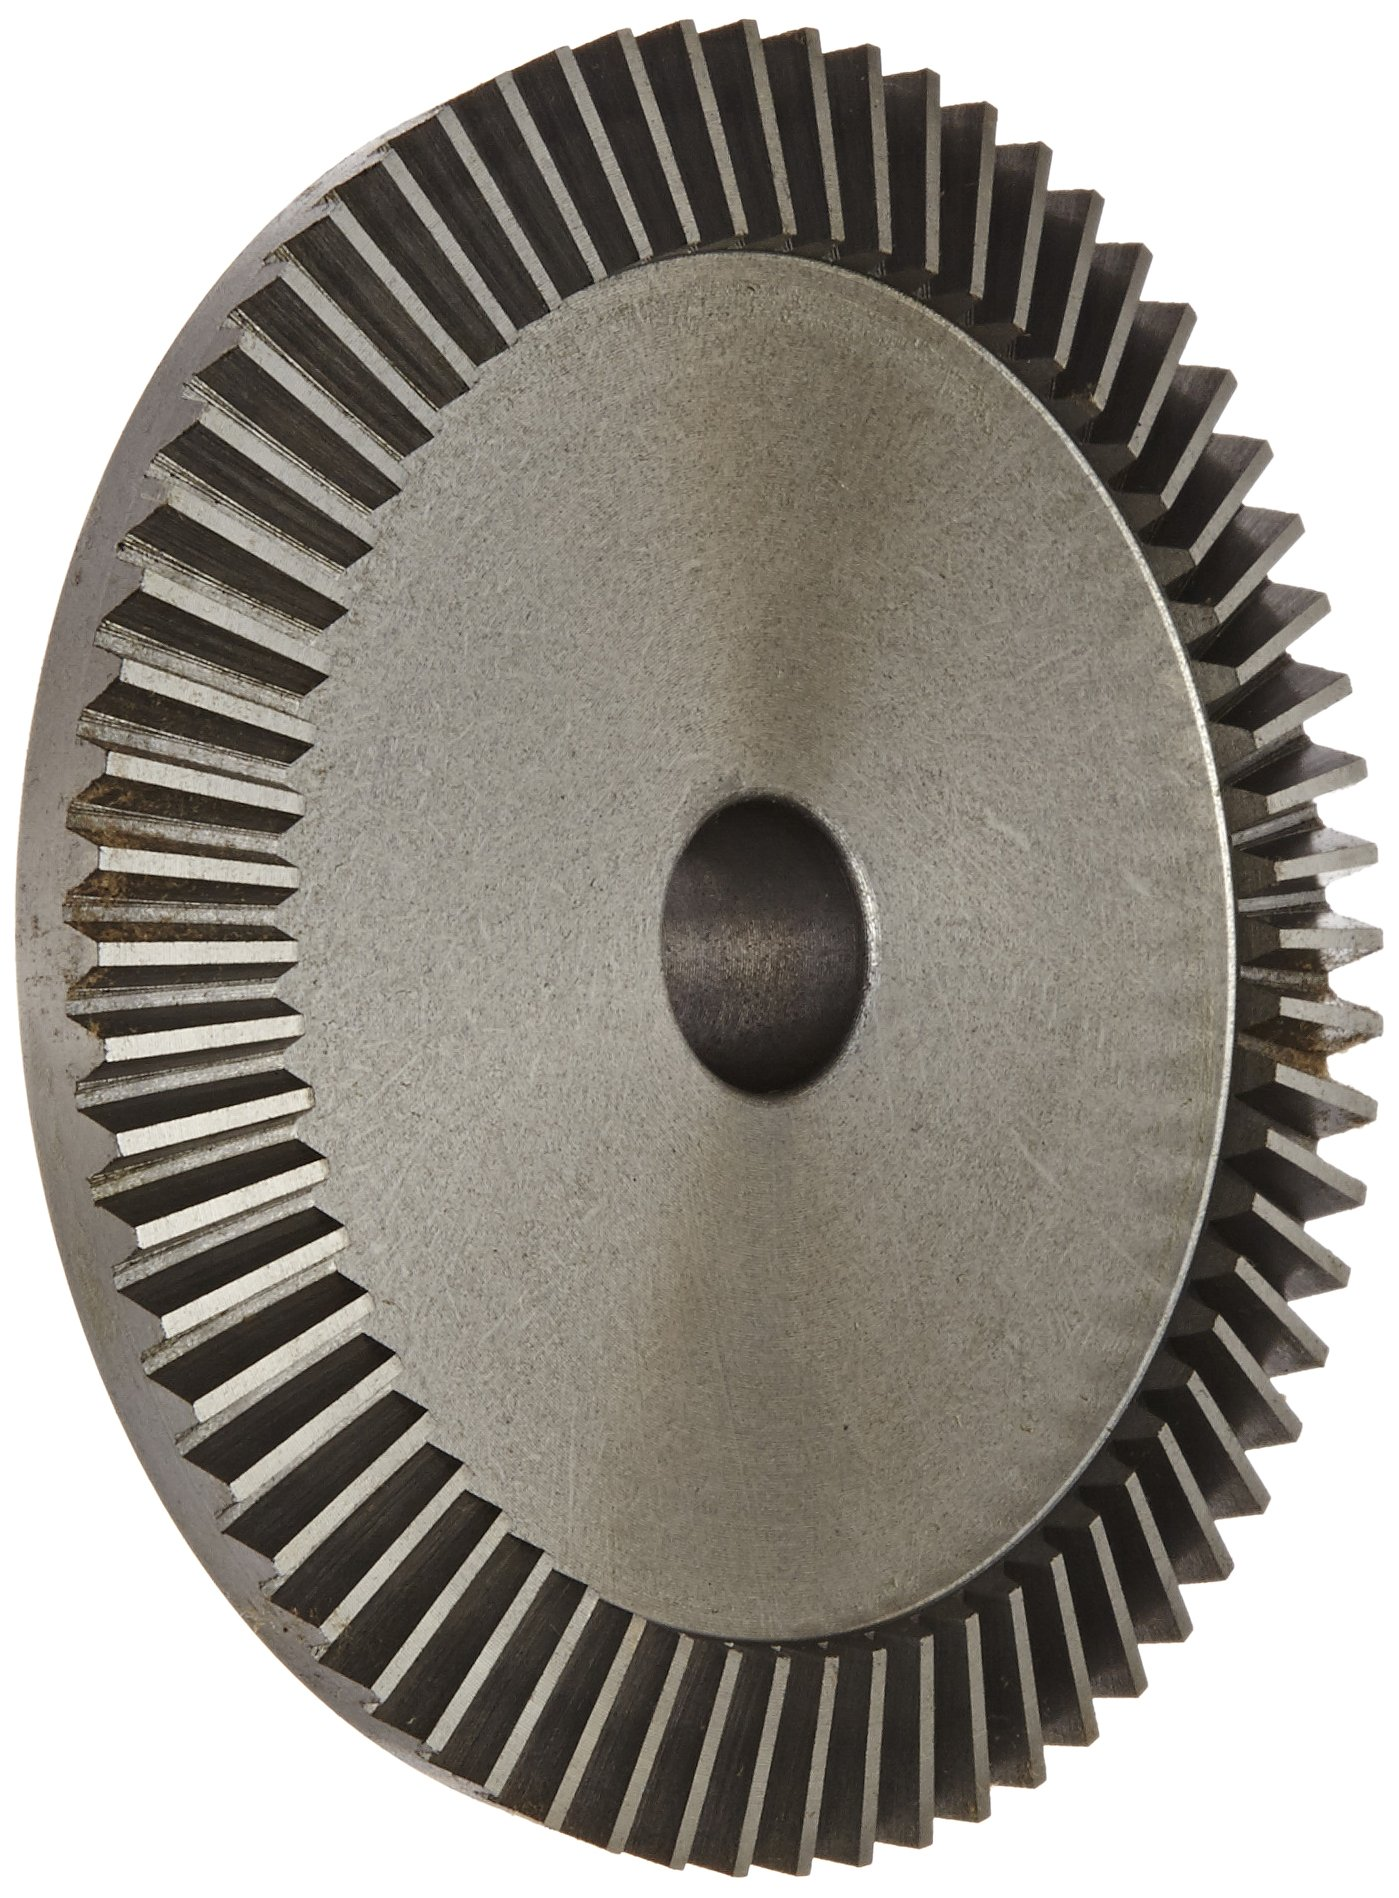 Boston Gear PA4416Y-G Bevel Gear, 4:1 Ratio, 0.625'' Bore, 16 Pitch, 64 Teeth, 20 Degree Pressure Angle, Straight Bevel, Cast Iron